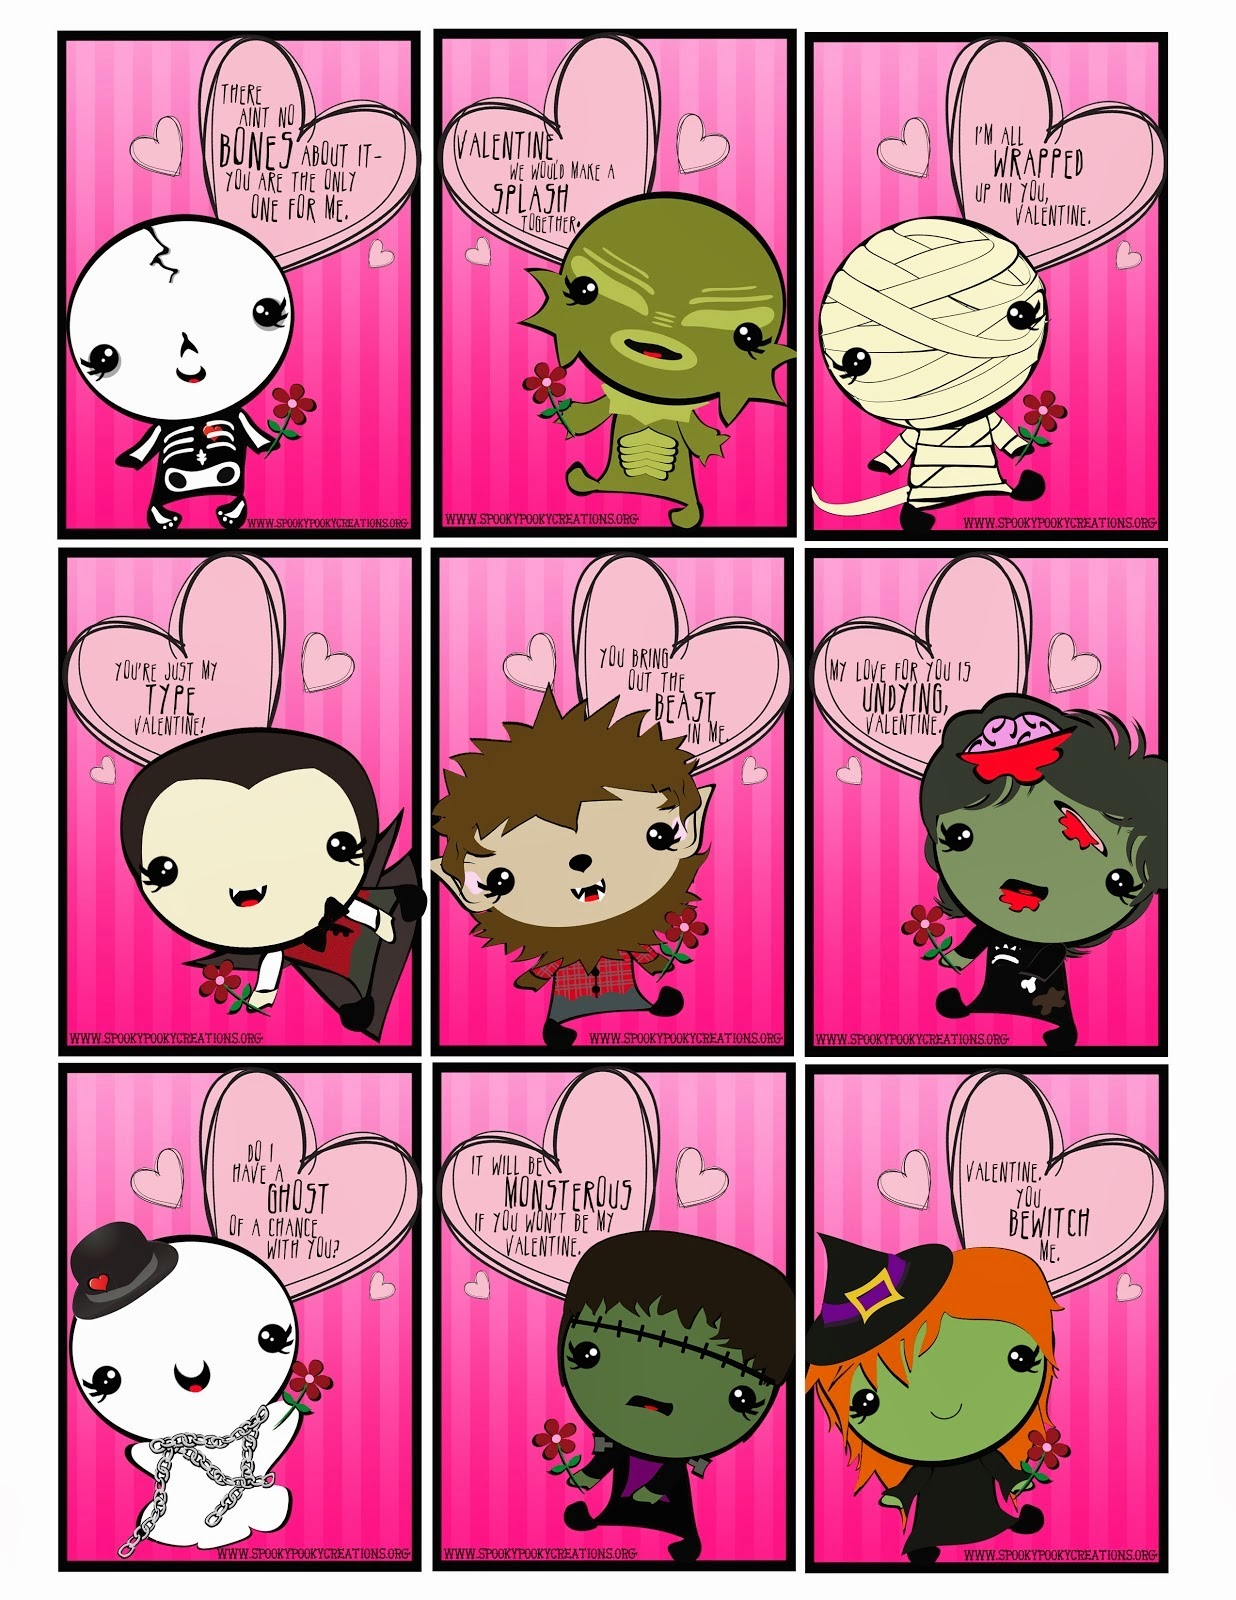 spooky pooky creations 2015 valentine cards